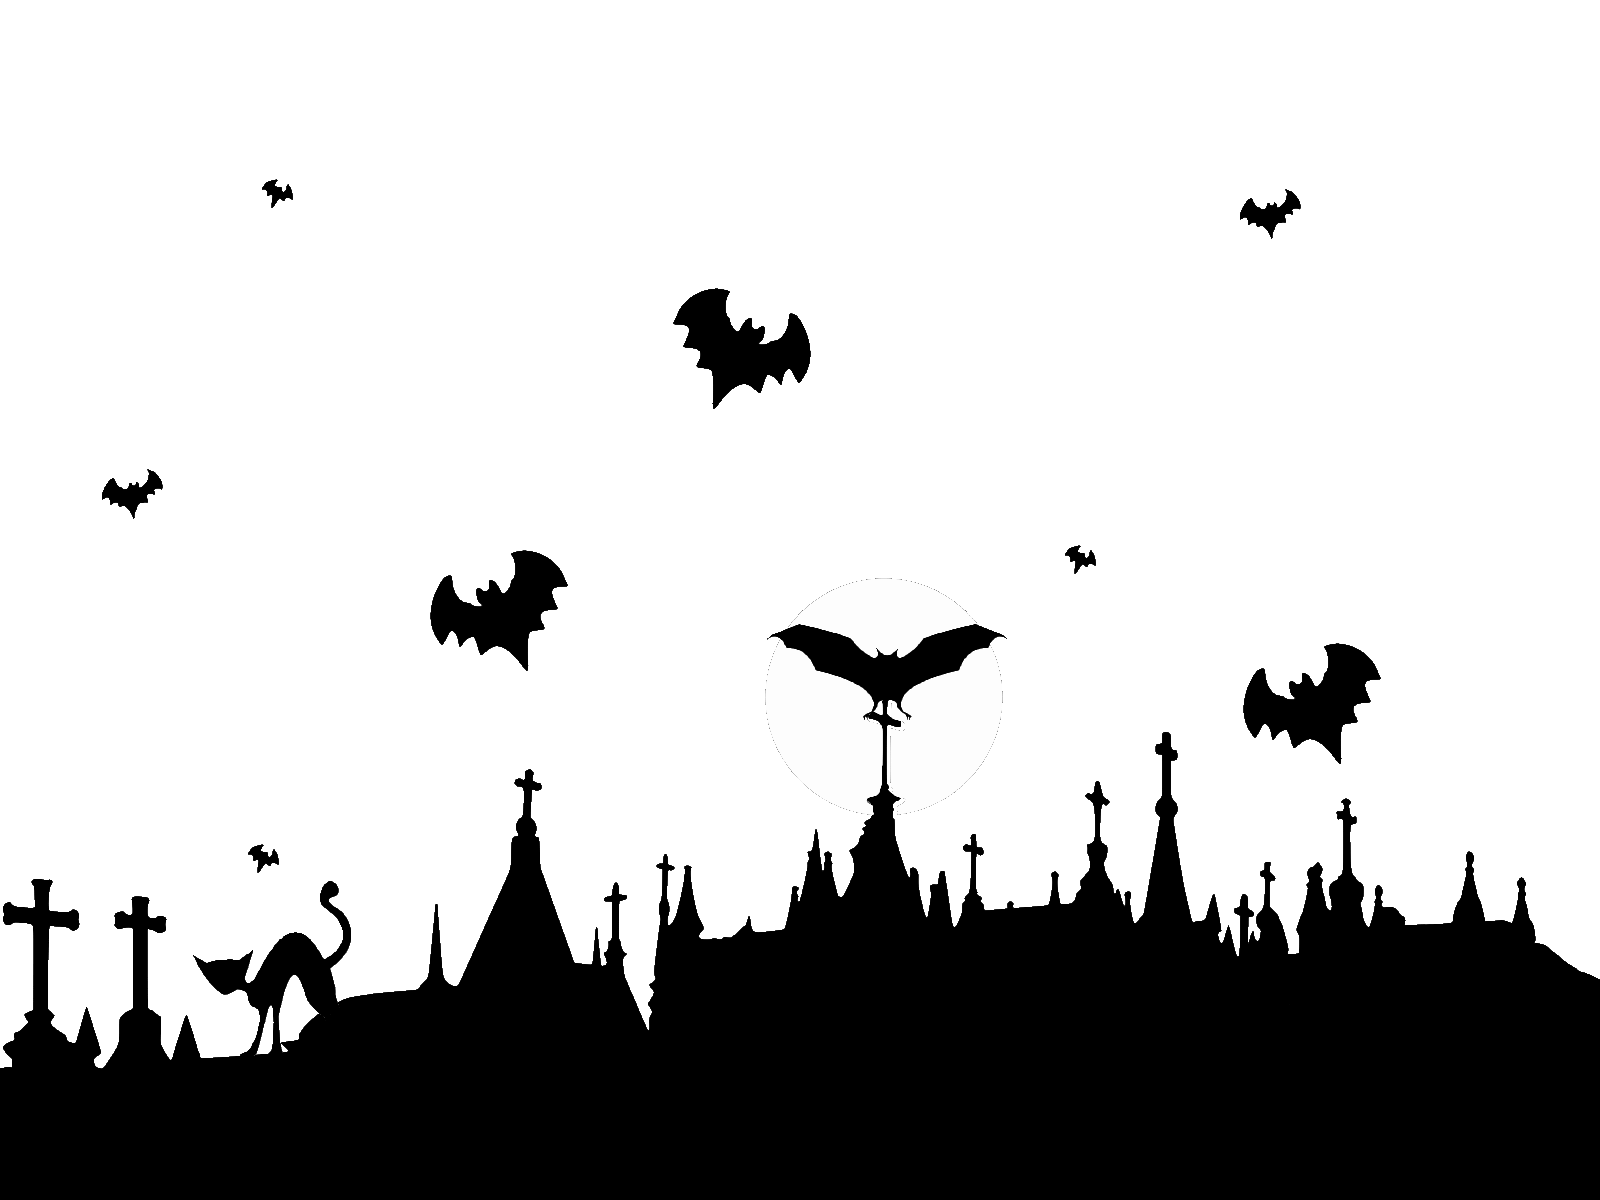 Graveyard keeler contracting and. Halloween png transparent background picture